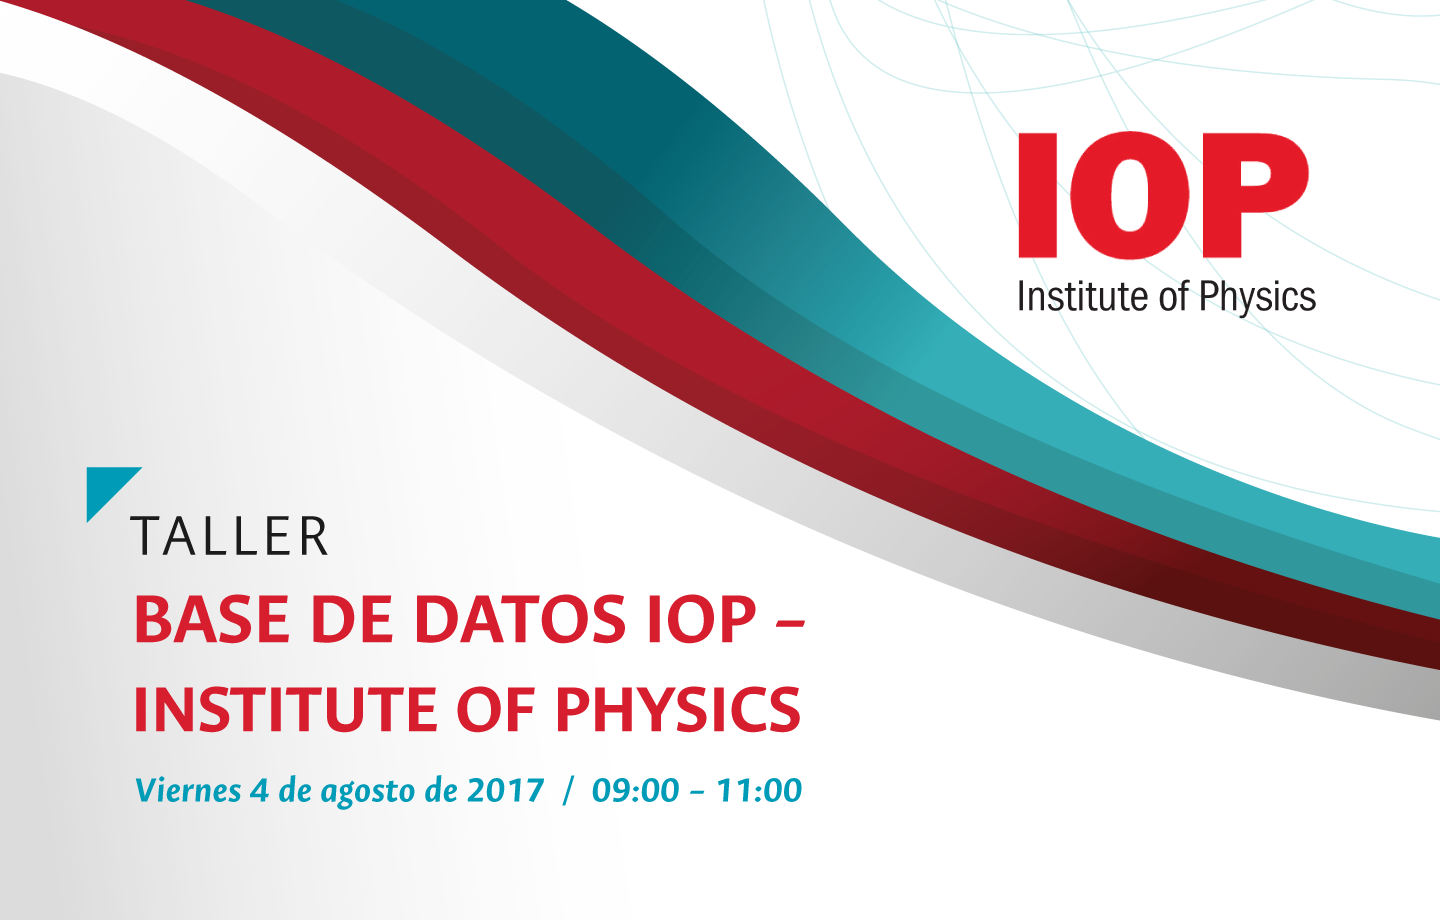 Invitación capacitación base de datos bibliográfica IOP (Institute of Physics)